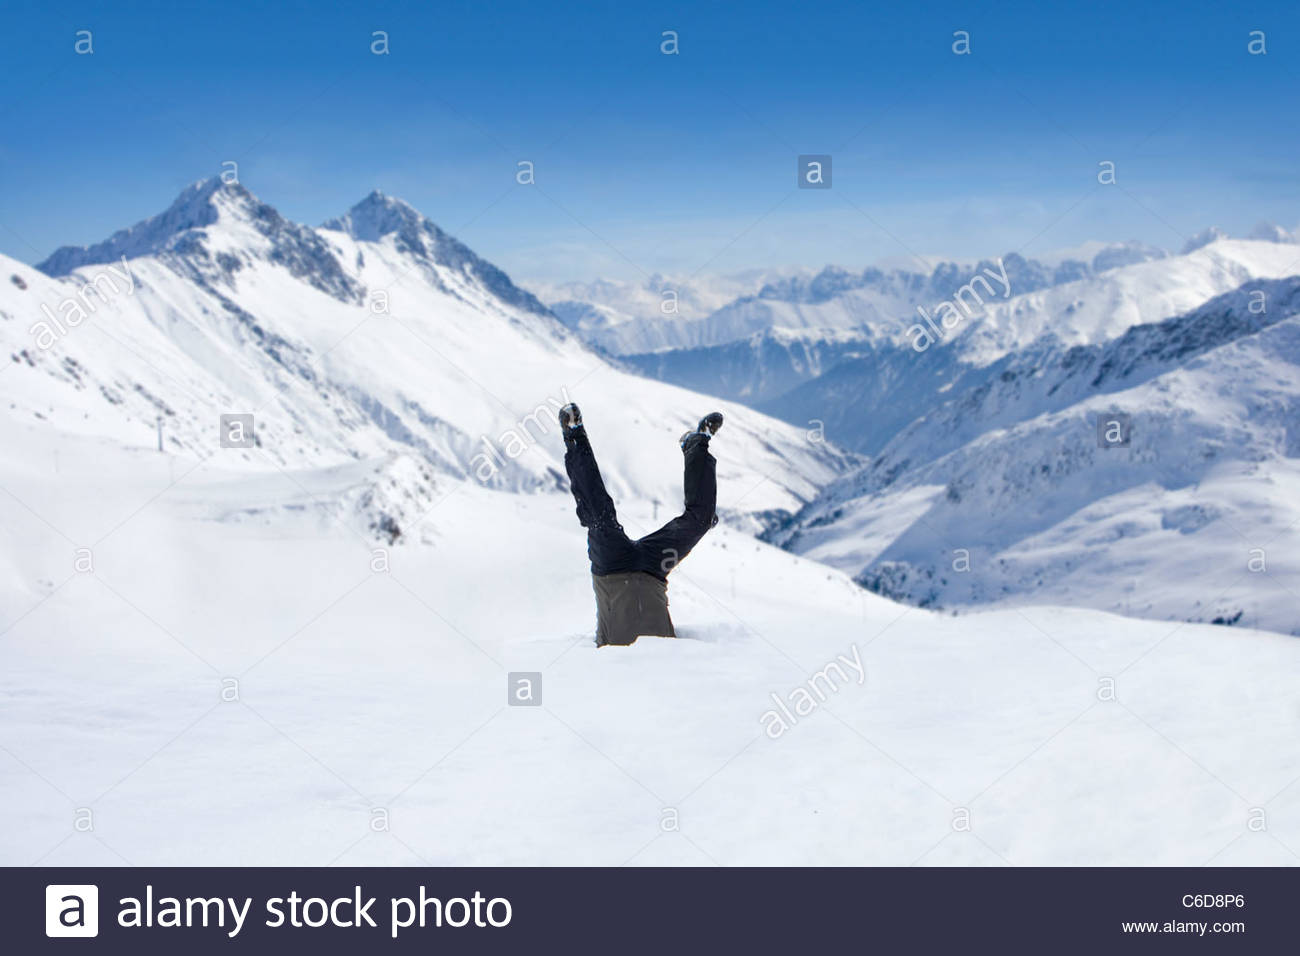 Man upside-down in snow on mountain Stock Photo